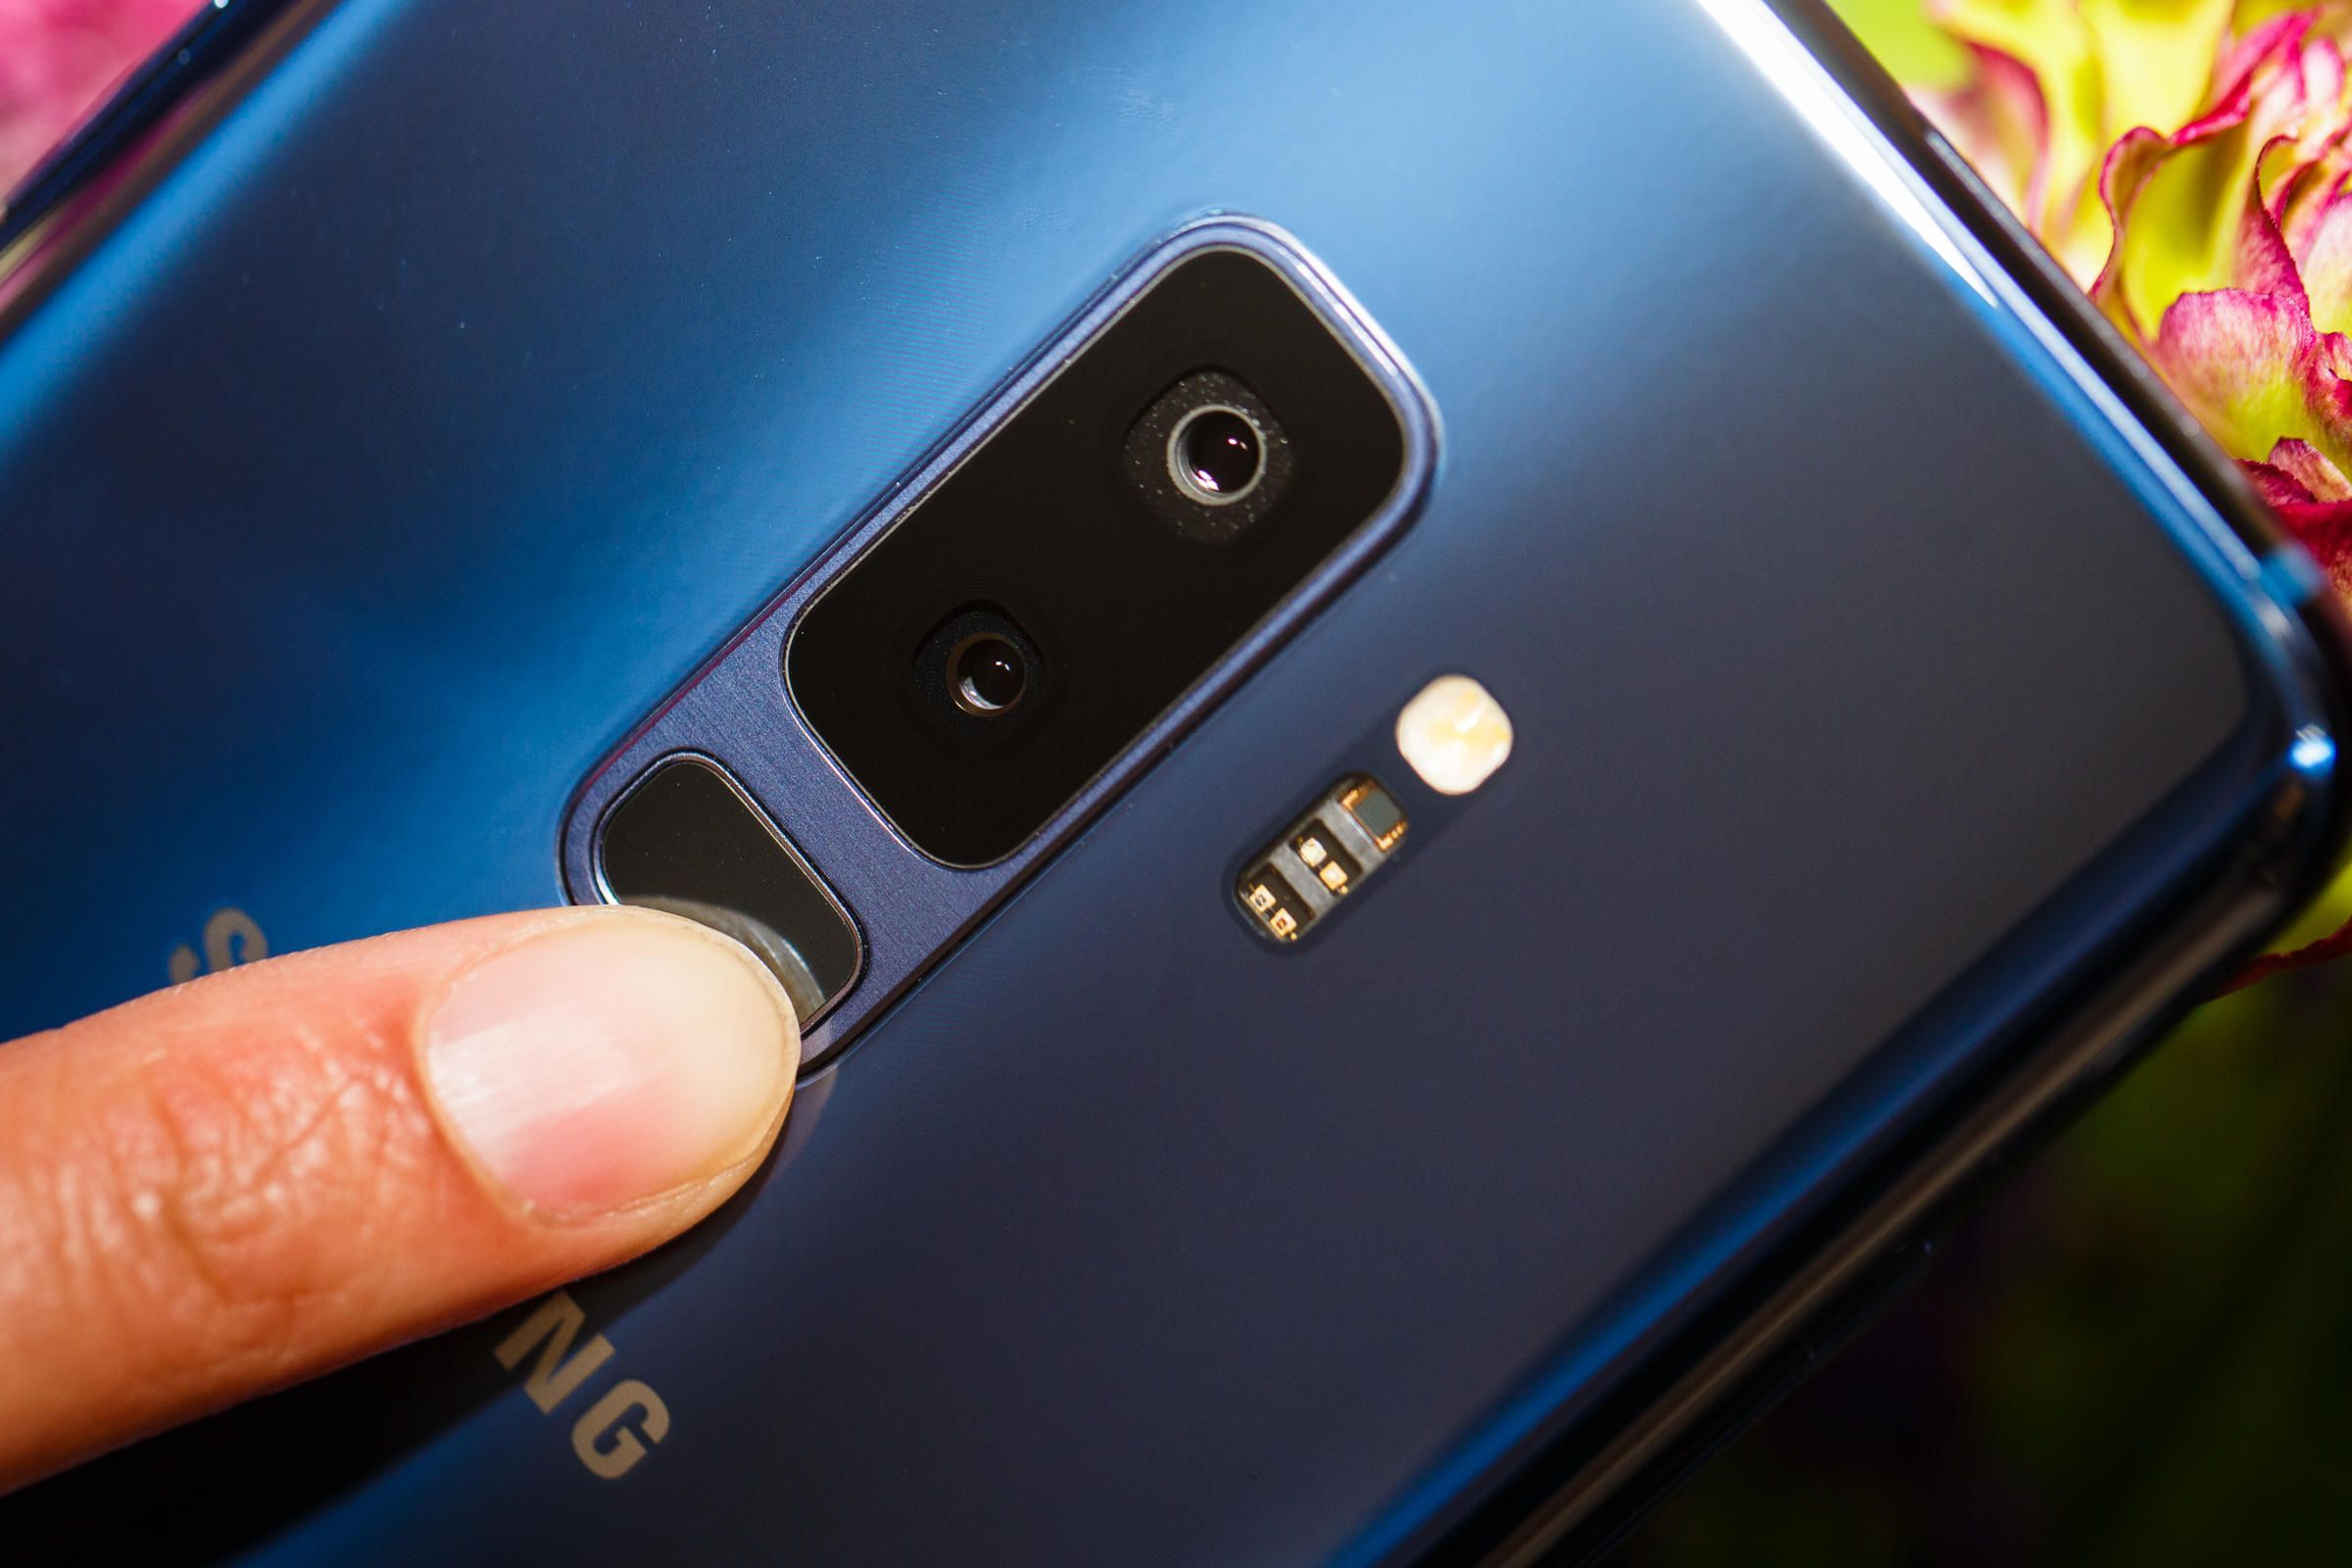 How the galaxy s9s camera could rescue your lowlight